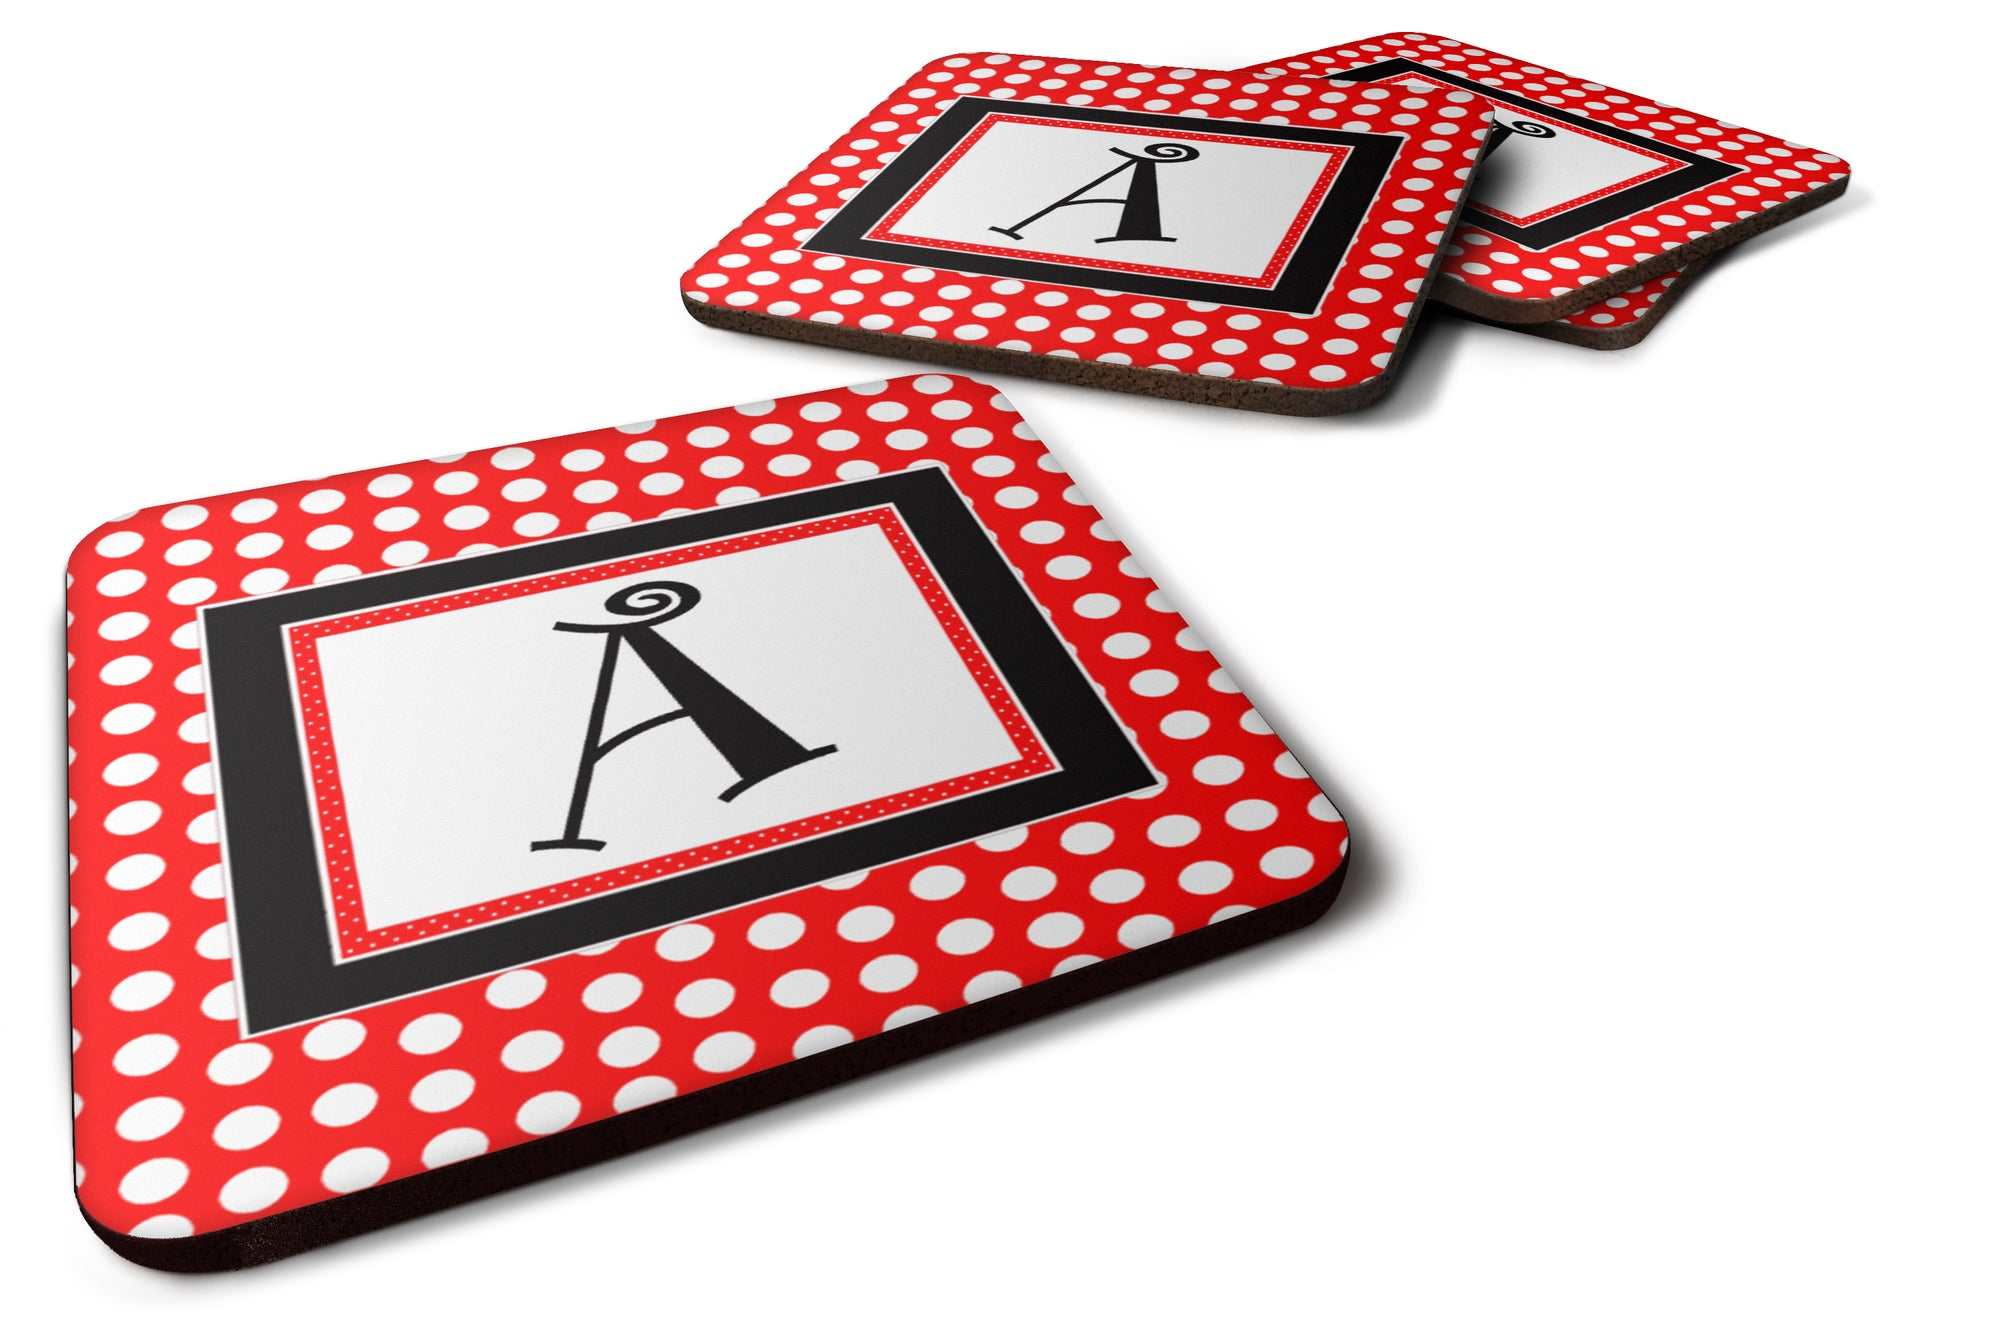 Set of 4 Monogram - Red Black Polka Dots Foam Coasters Initial Letter A by Caroline's Treasures